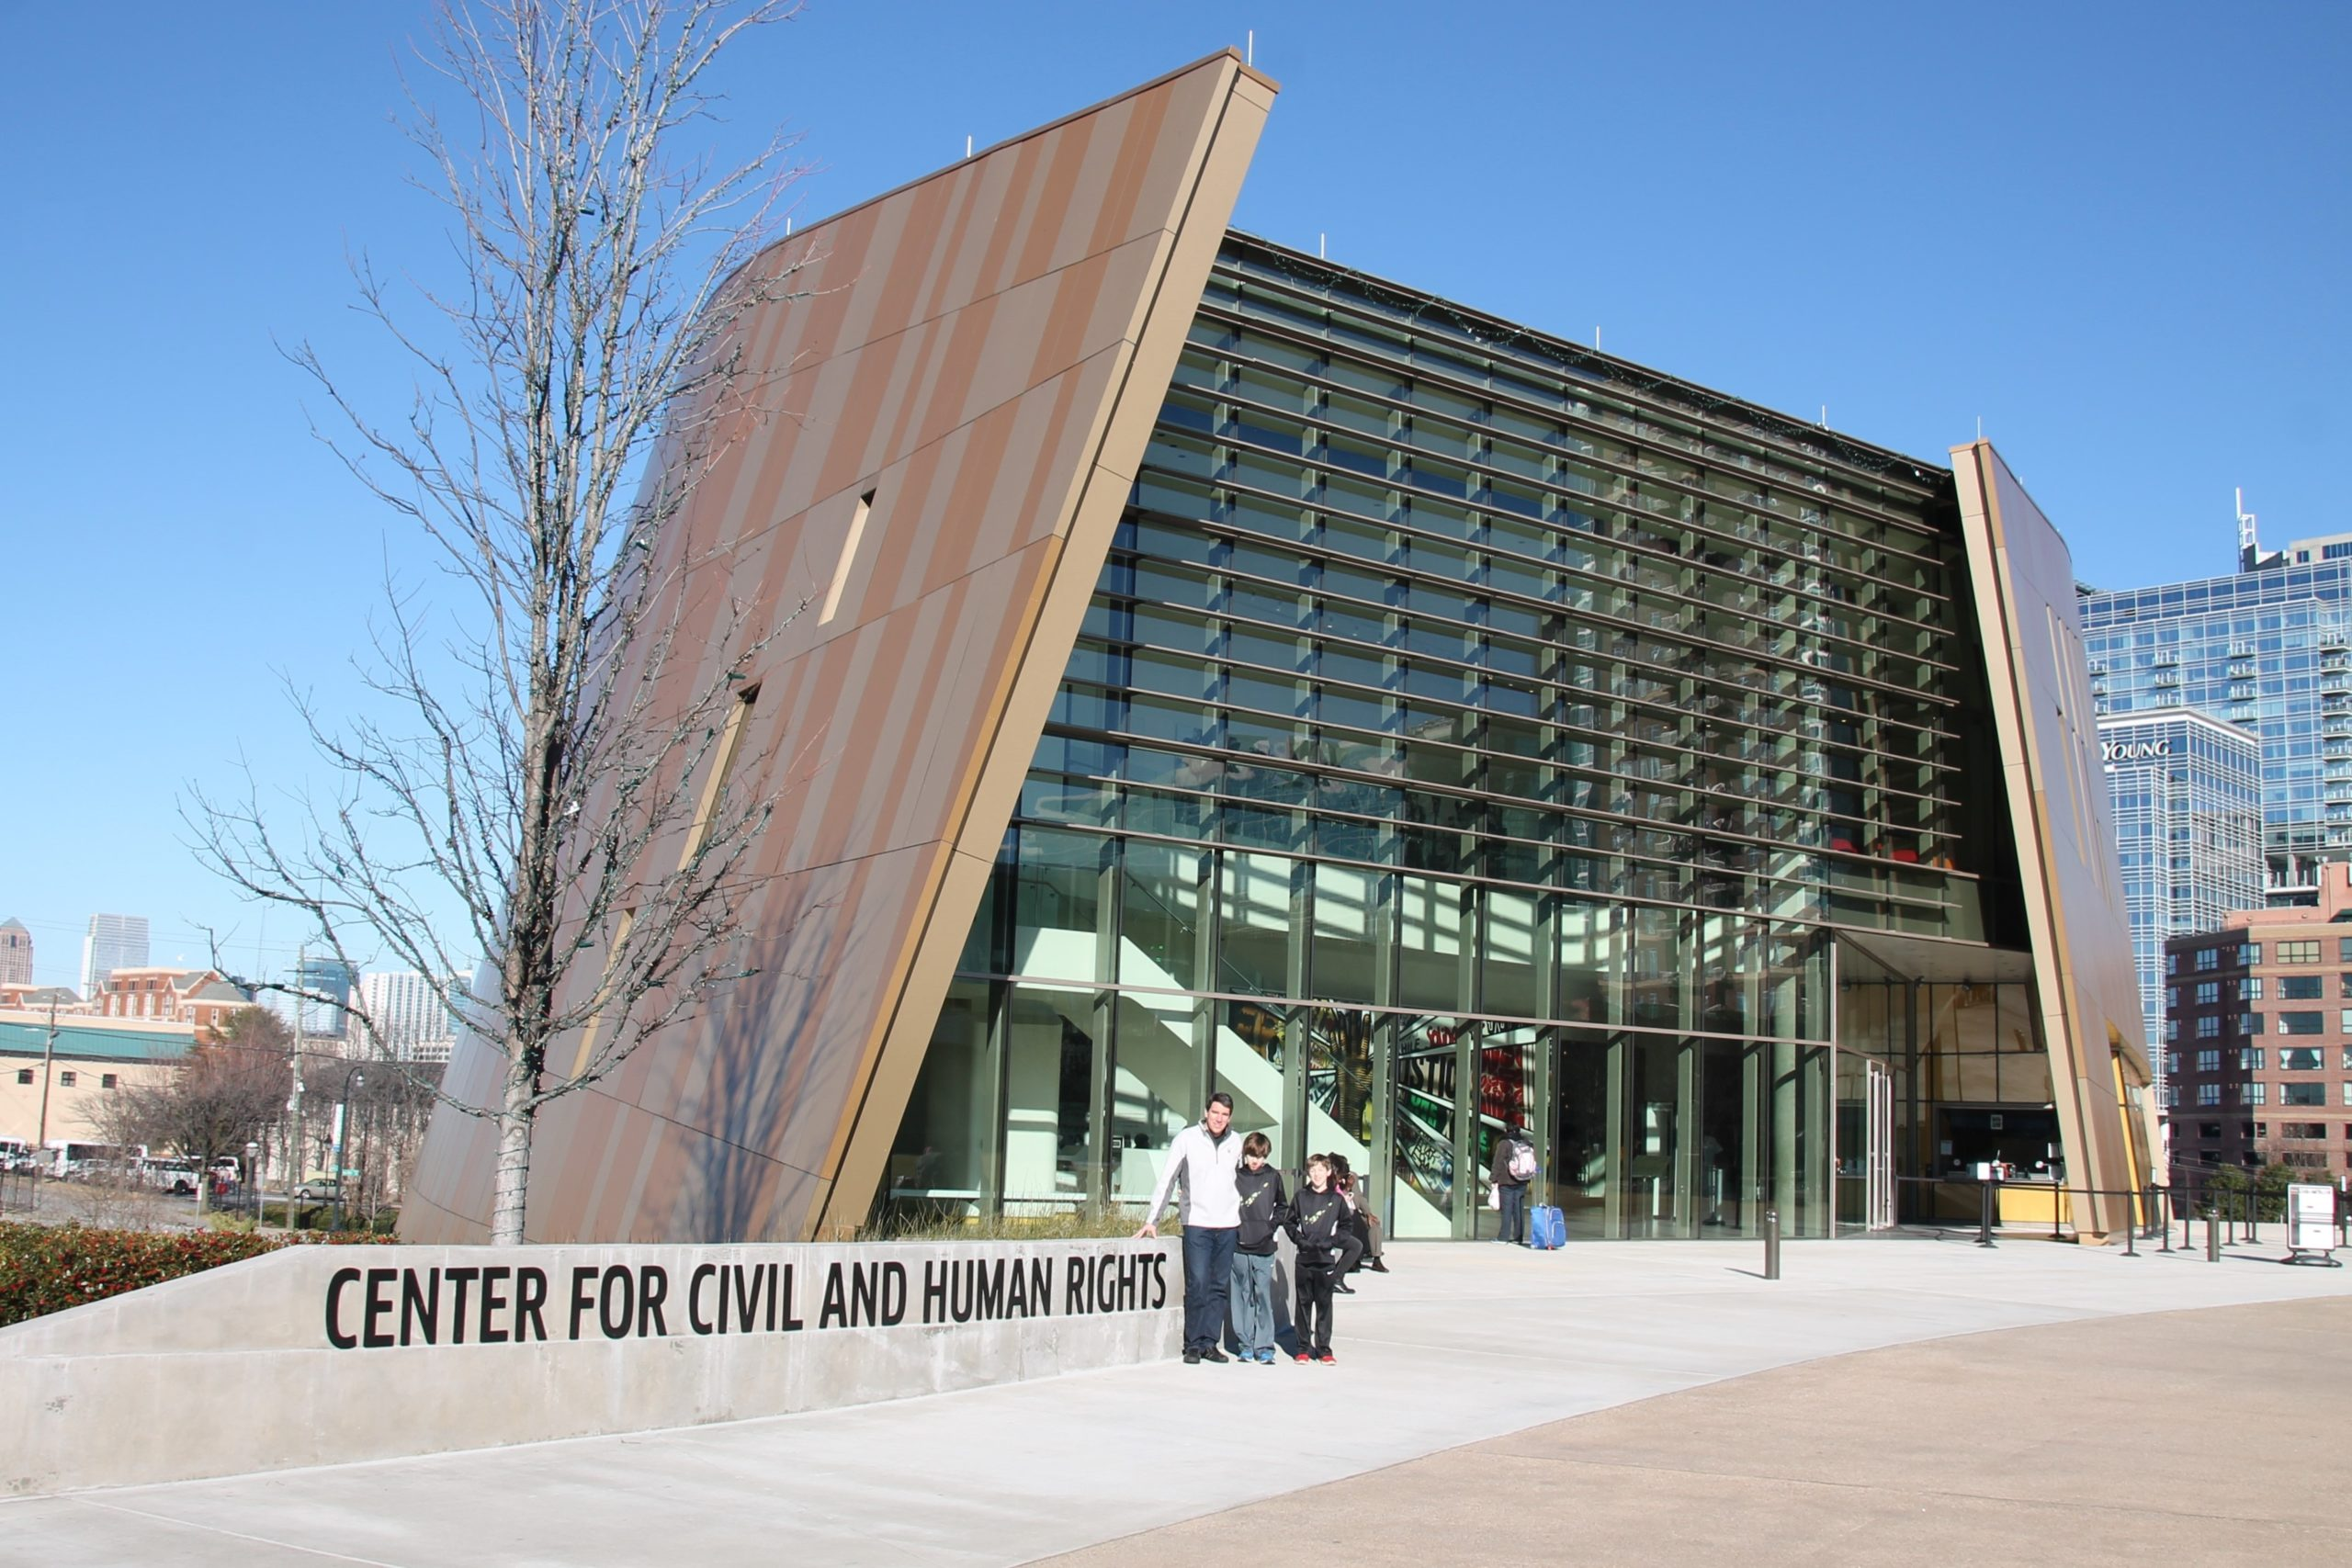 The National Center for Civil and Human Rights, just one of many Atlanta museums.